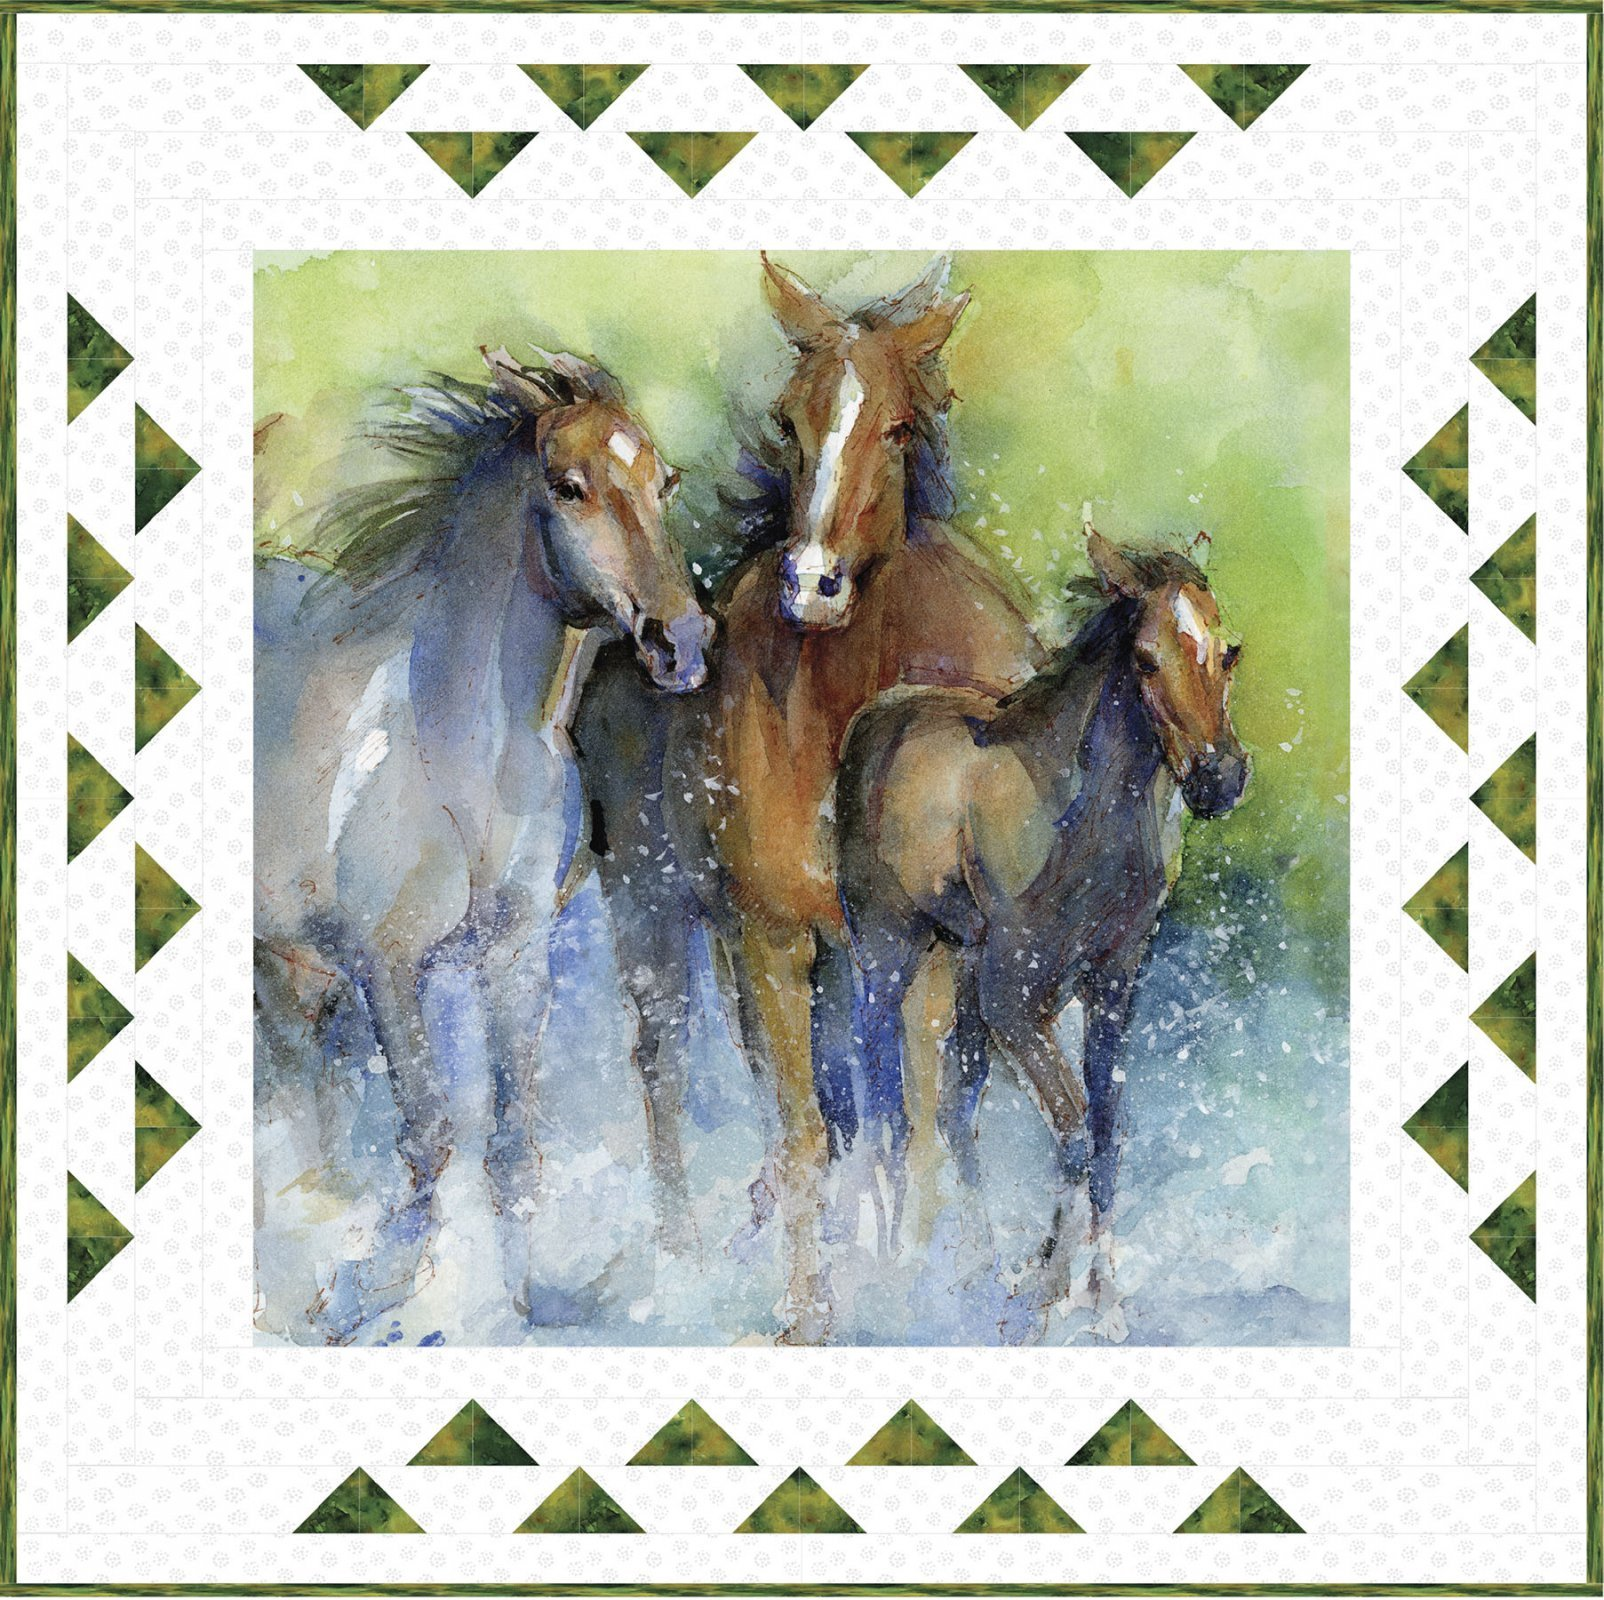 3 Wishes Fabric Running Horses Quilt (Free)